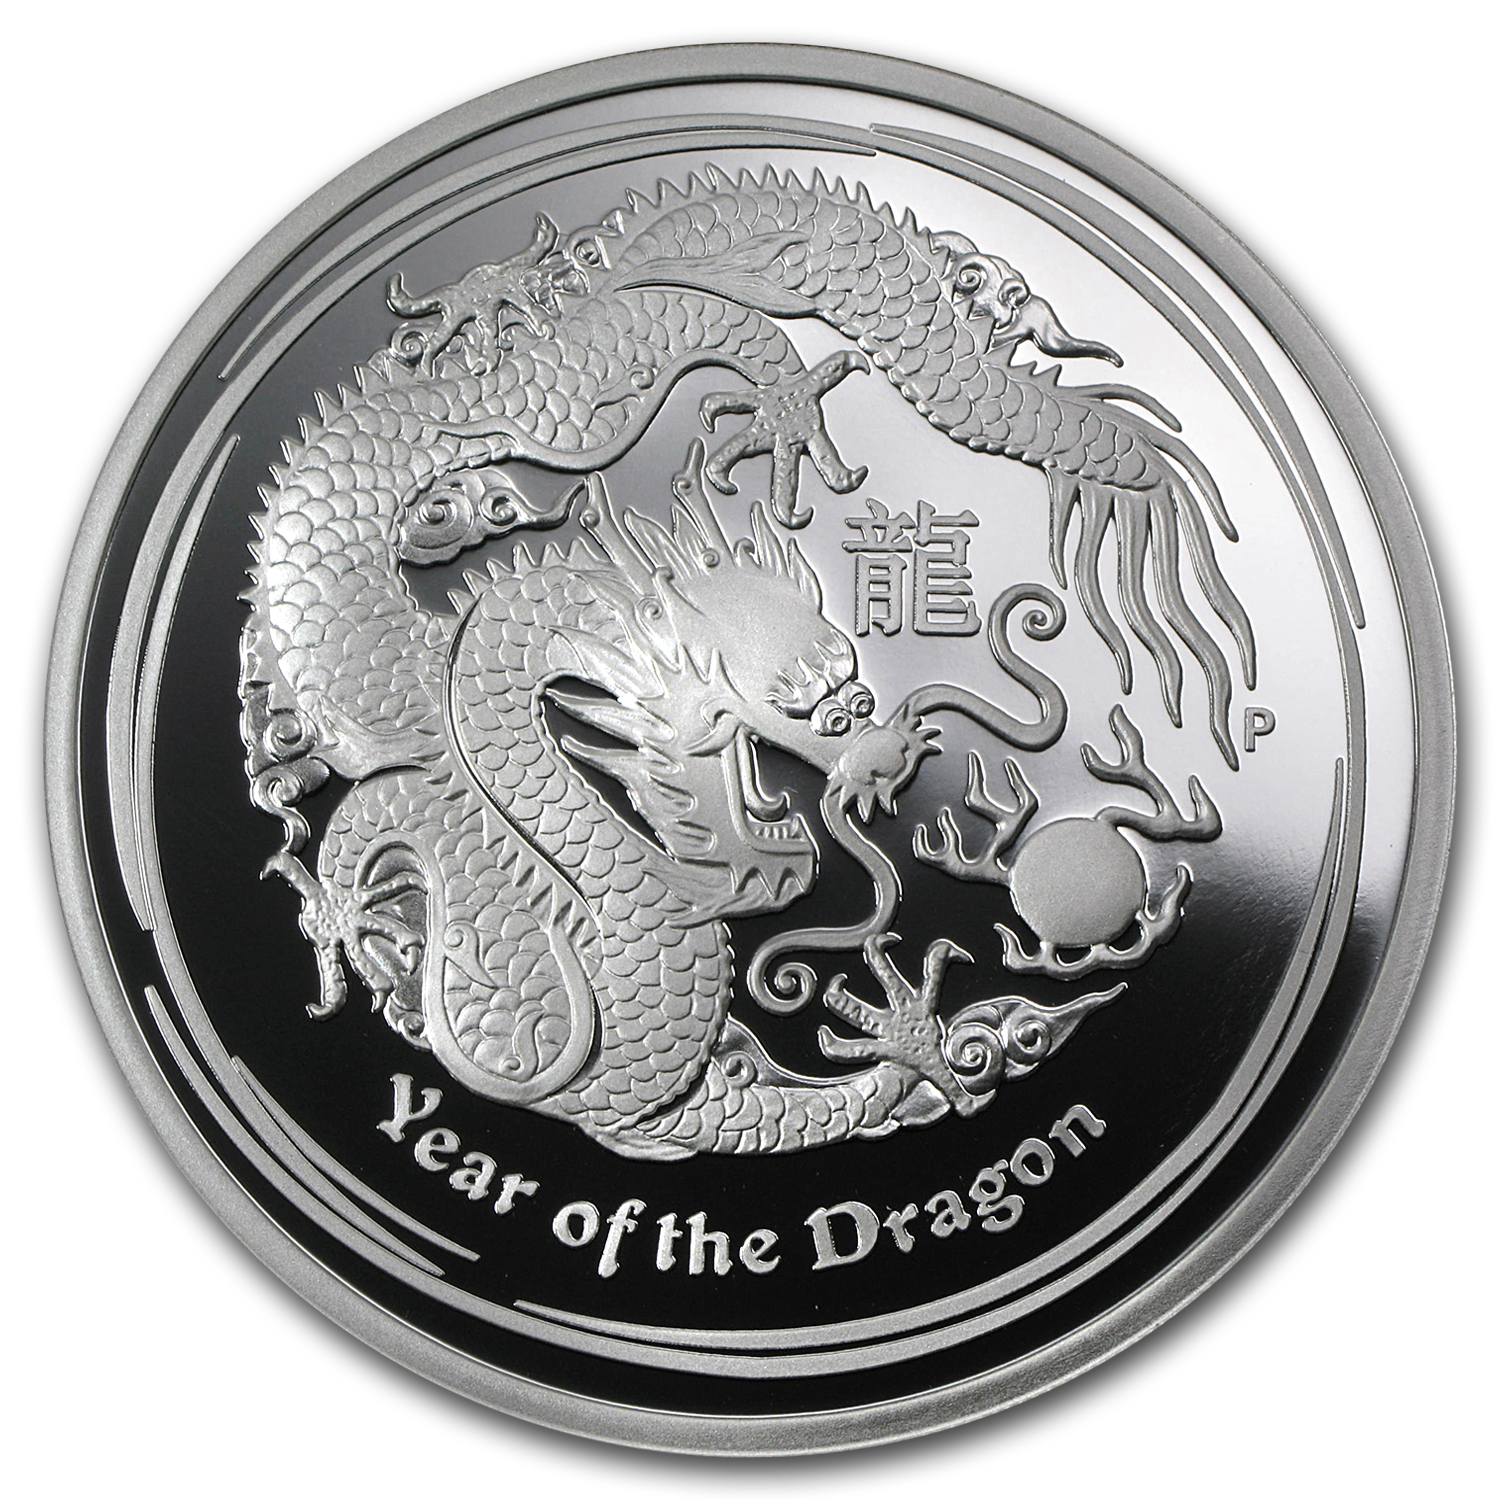 2012 5 oz Silver Australian Year of the Dragon Proof